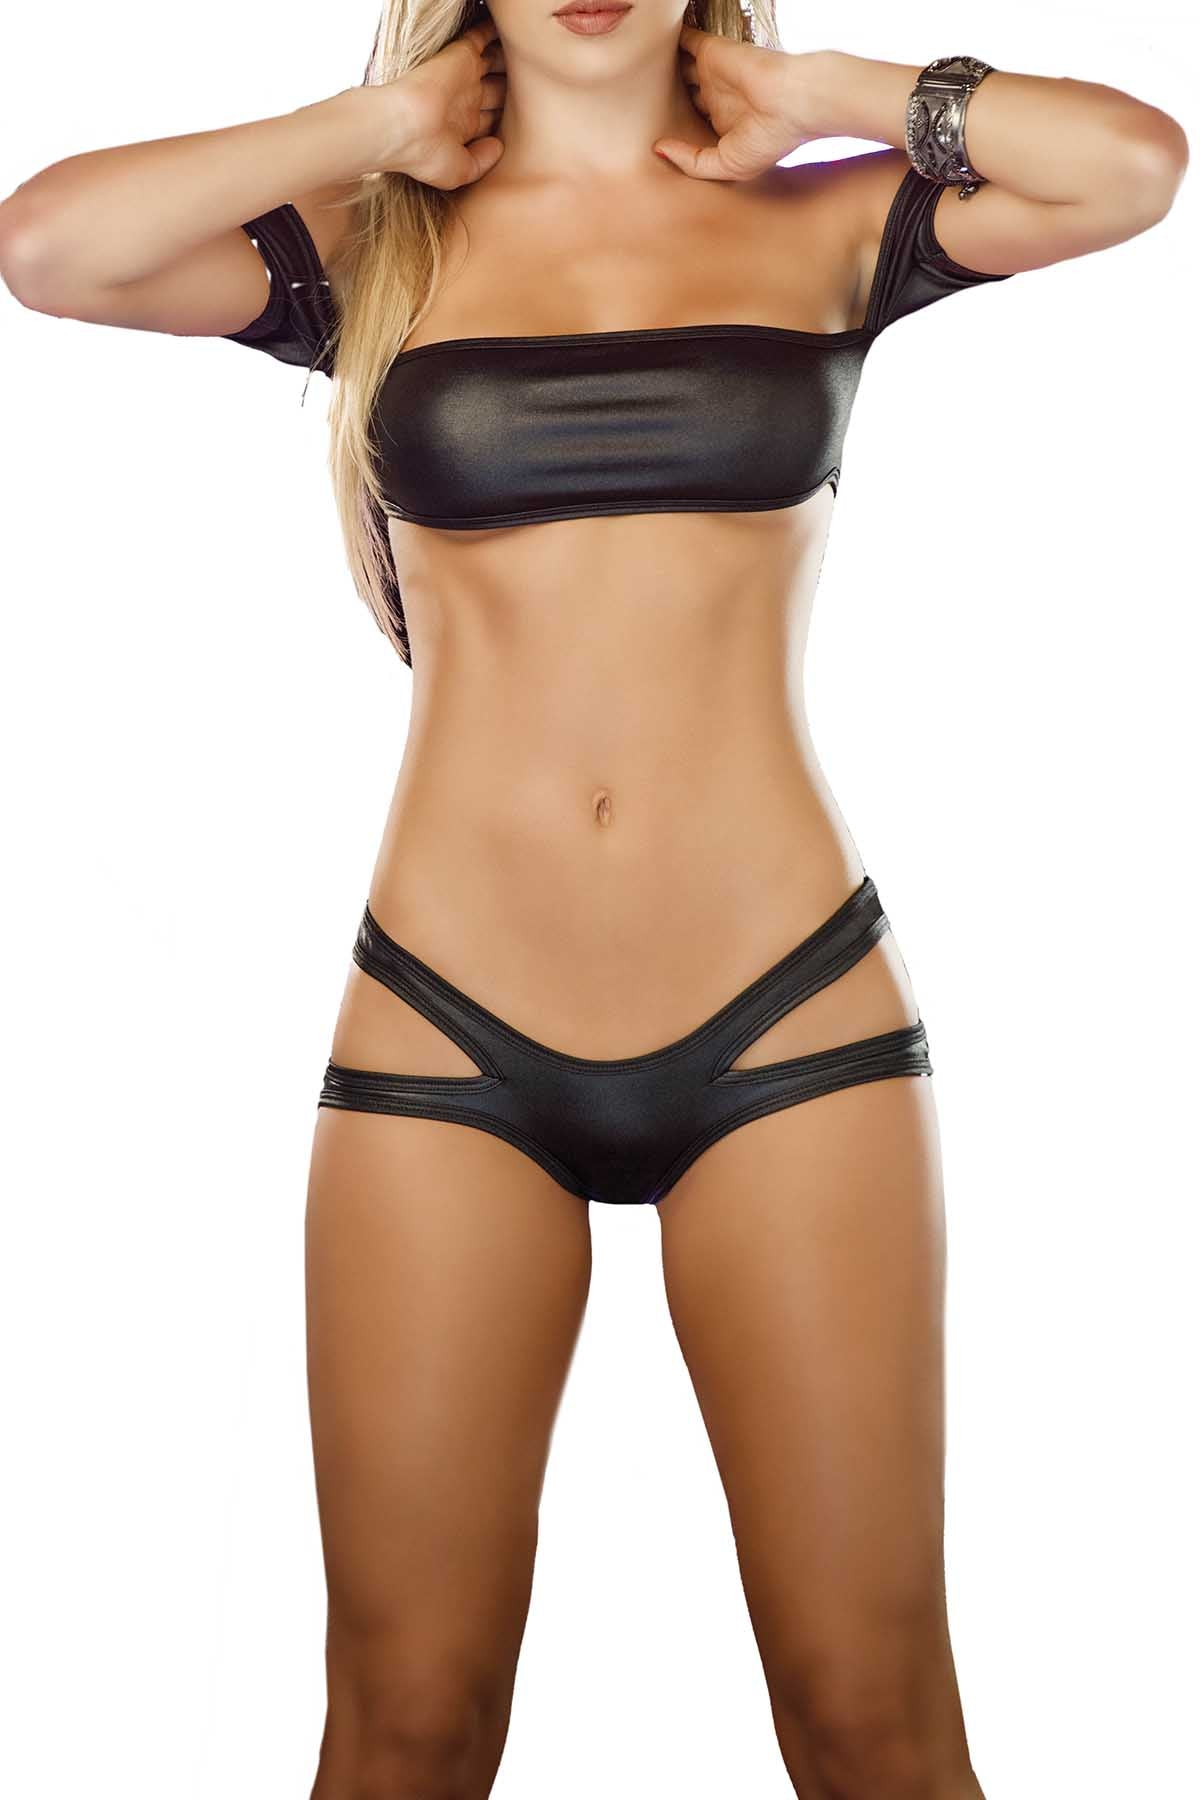 Mapale 2pc Black Dance To Impress Lingerie Set